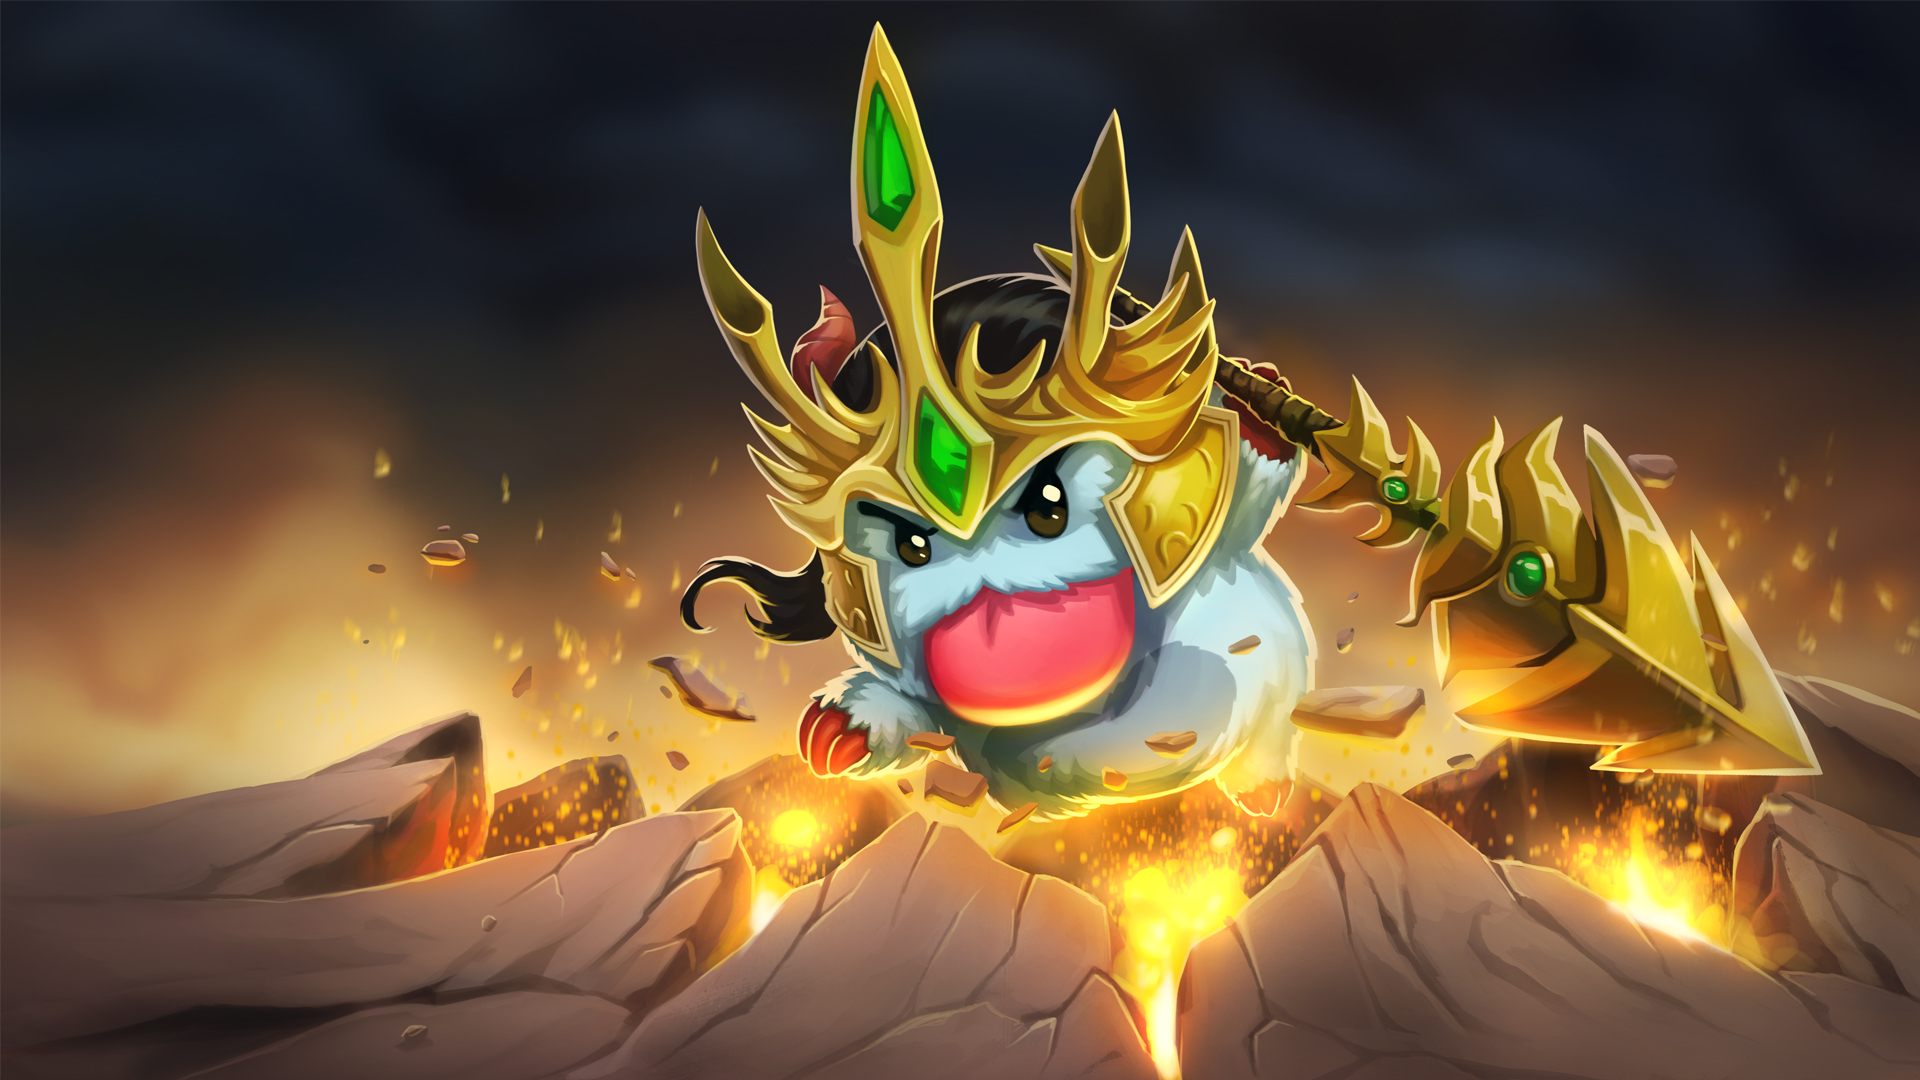 Jarvan IV Poro wallpaper